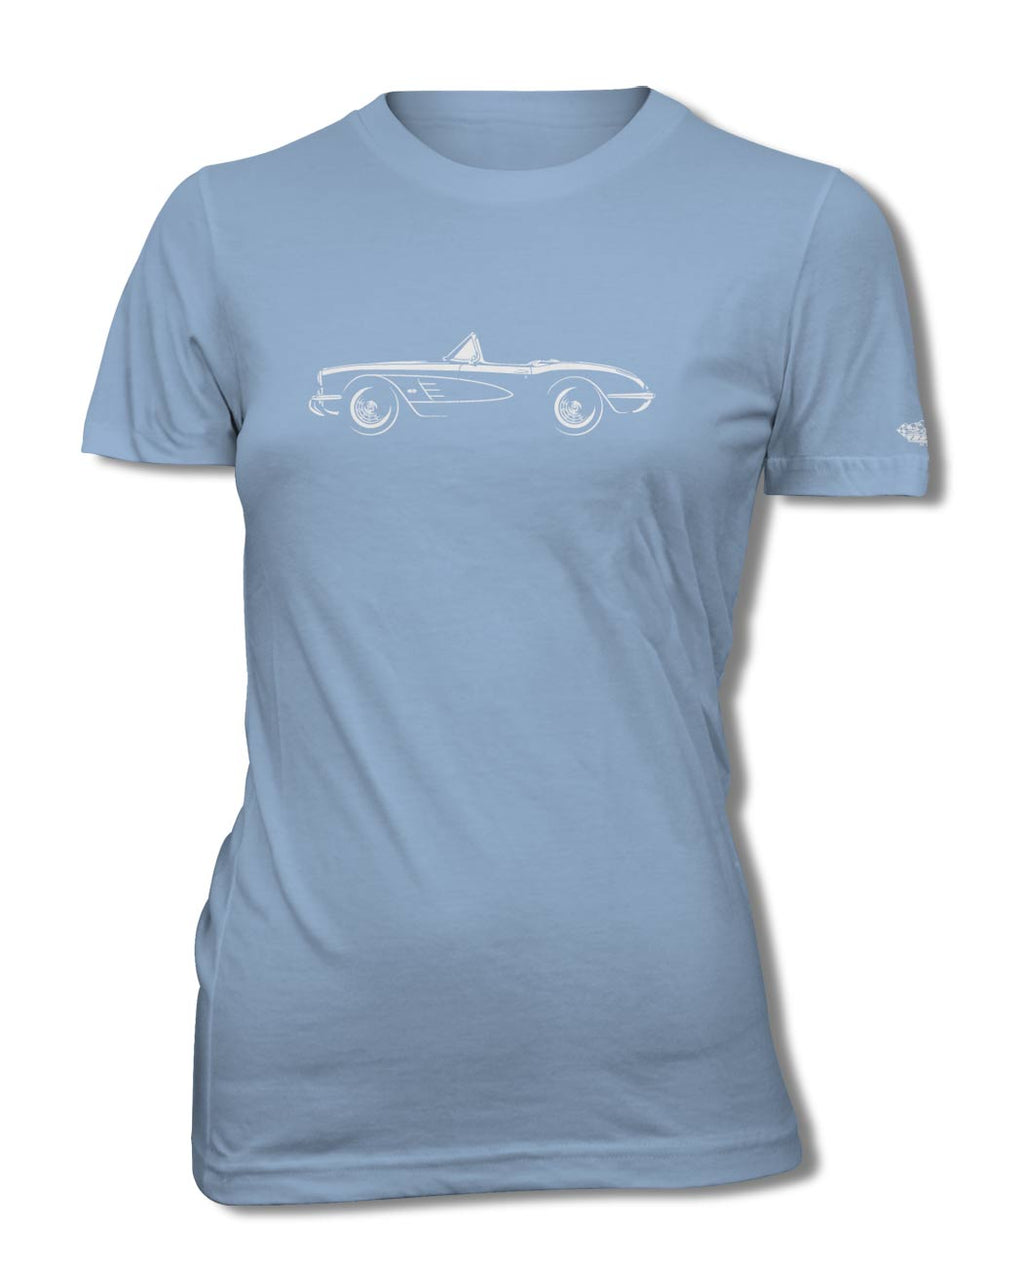 1958 Chevrolet Corvette Convertible C1 T-Shirt - Women - Side View